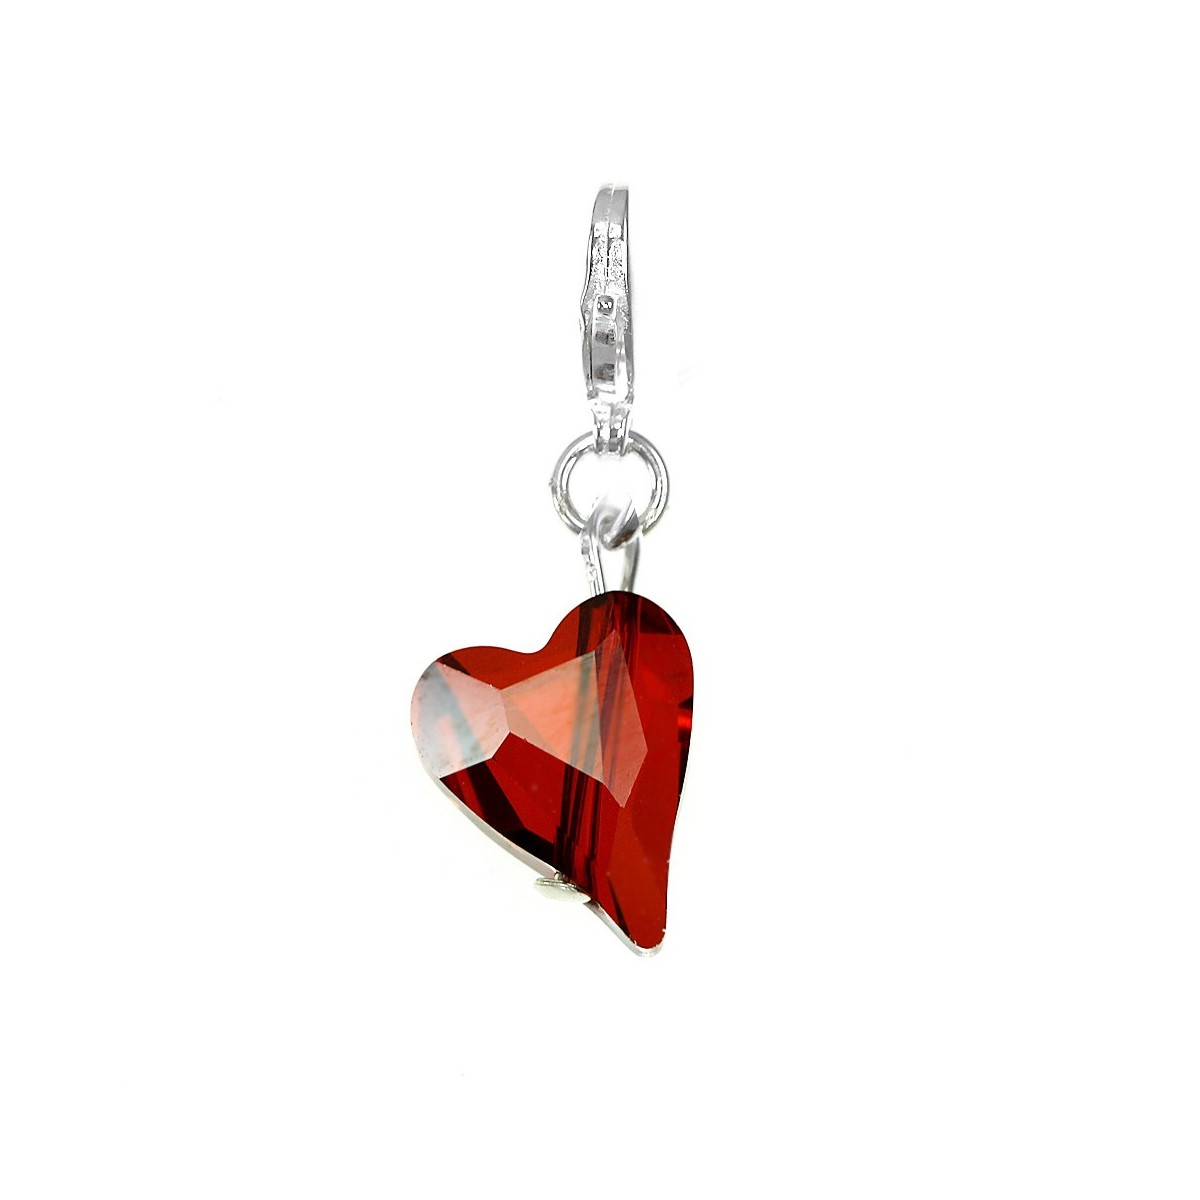 Charm coeur rouge So Charm made with Crystal from Swarovski